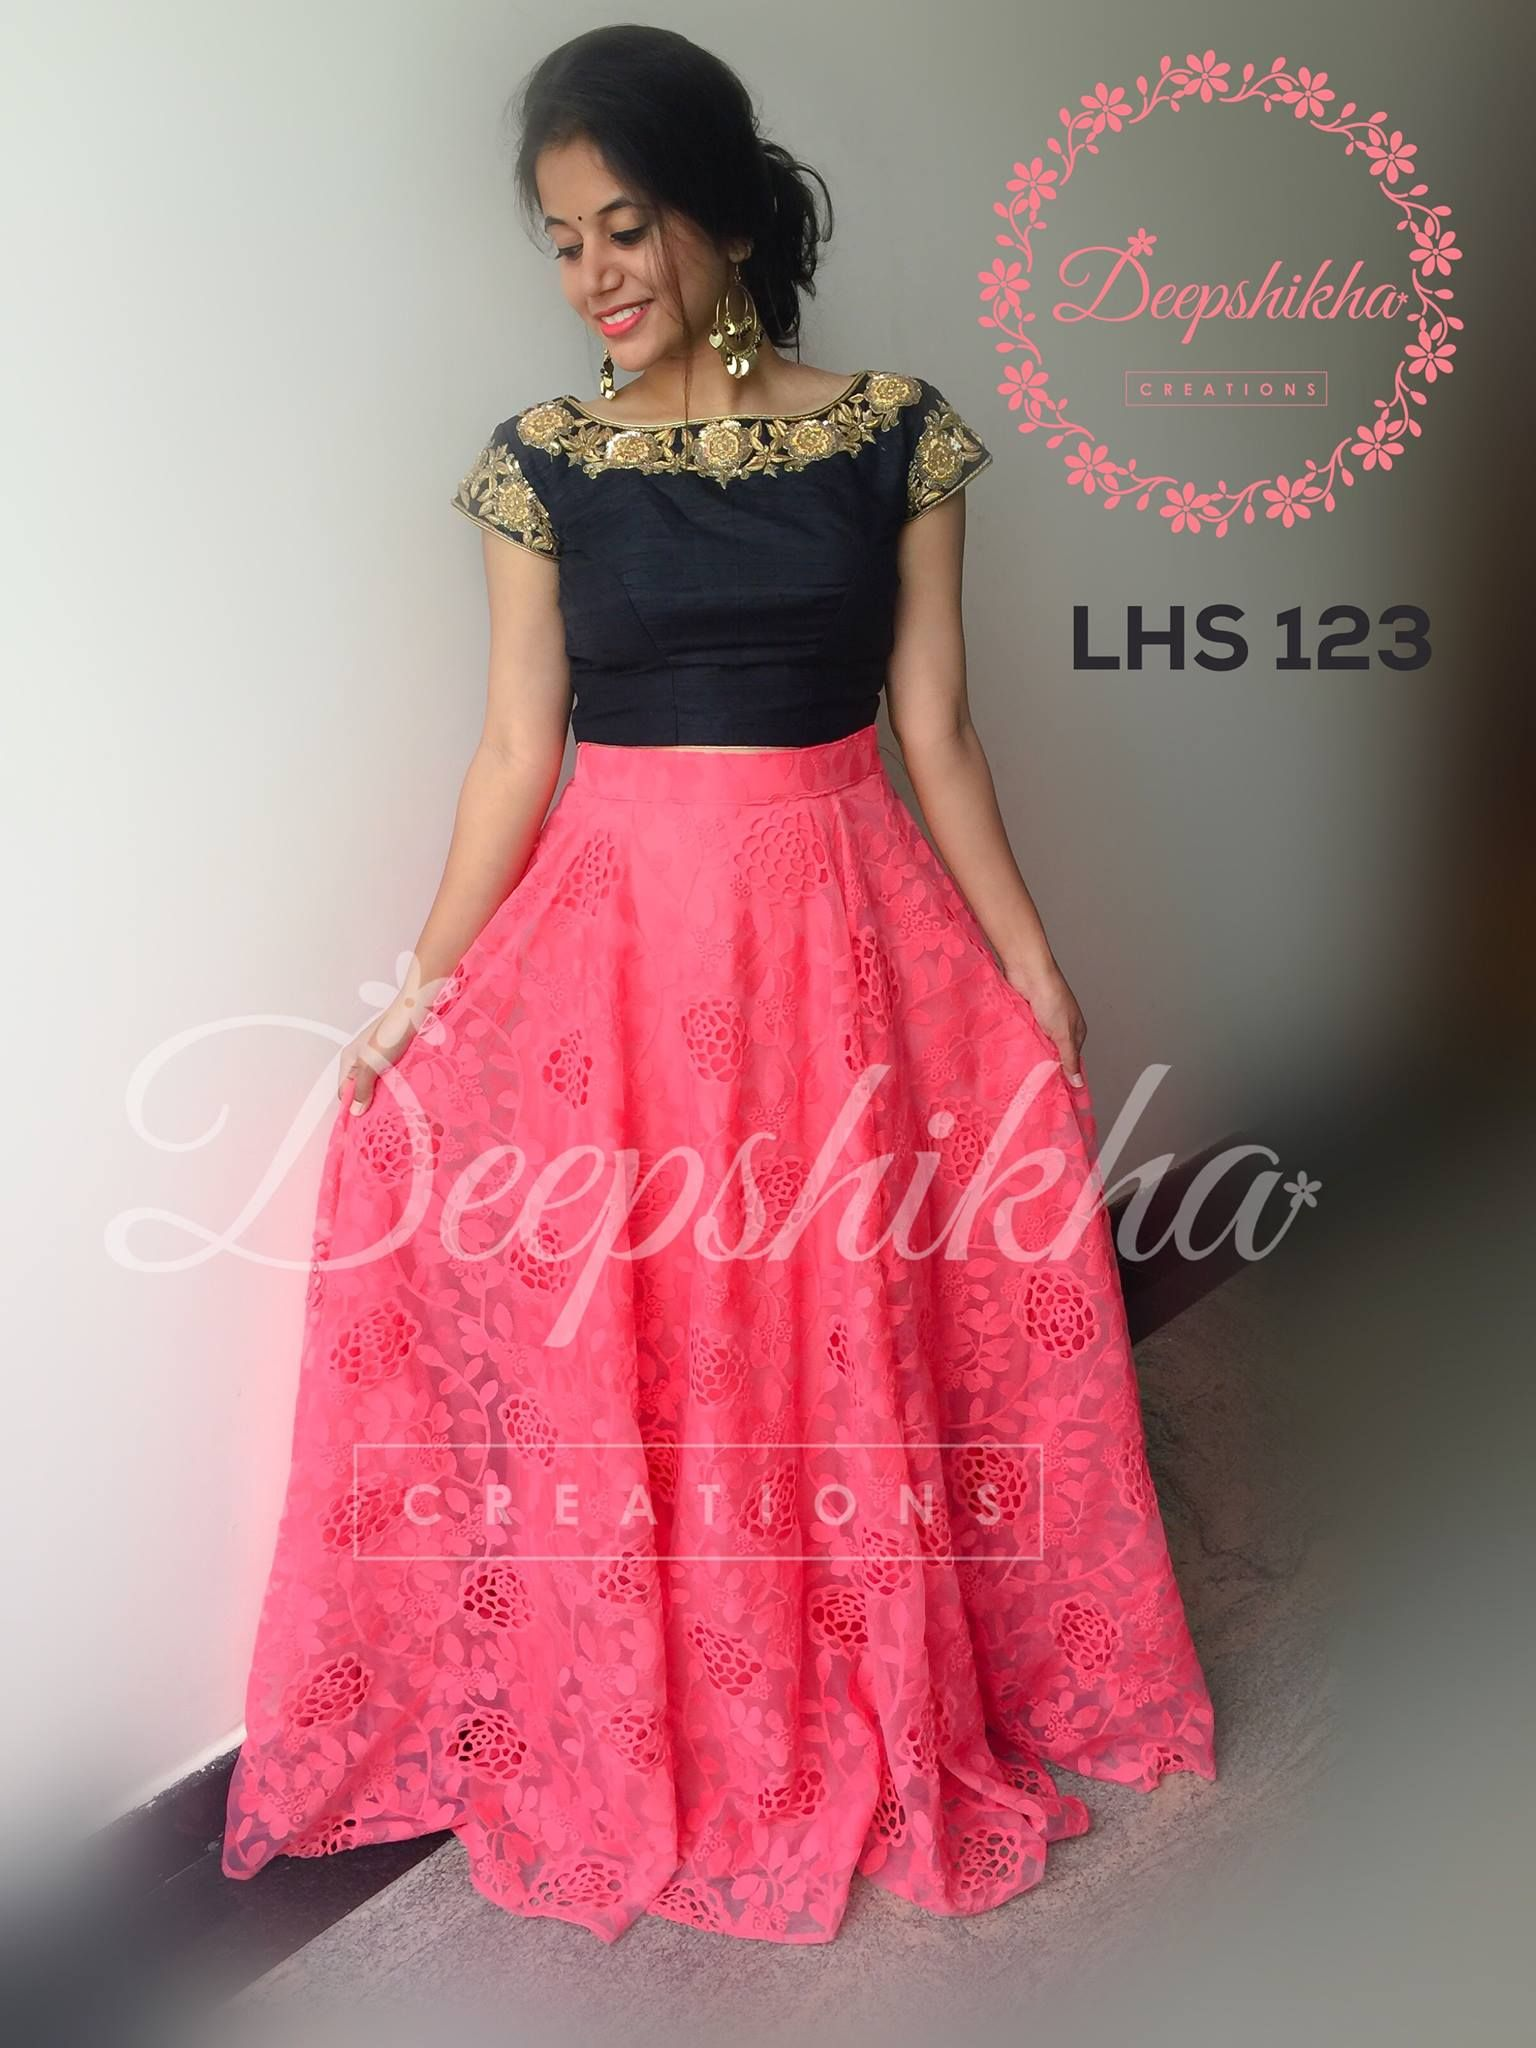 103a9d620cabec LHS 123For queries kindly inbox orEmail - deepshikhacreations gmail.com  Whatsapp   Call - 919059683293 04 September 2016 06 October 2016